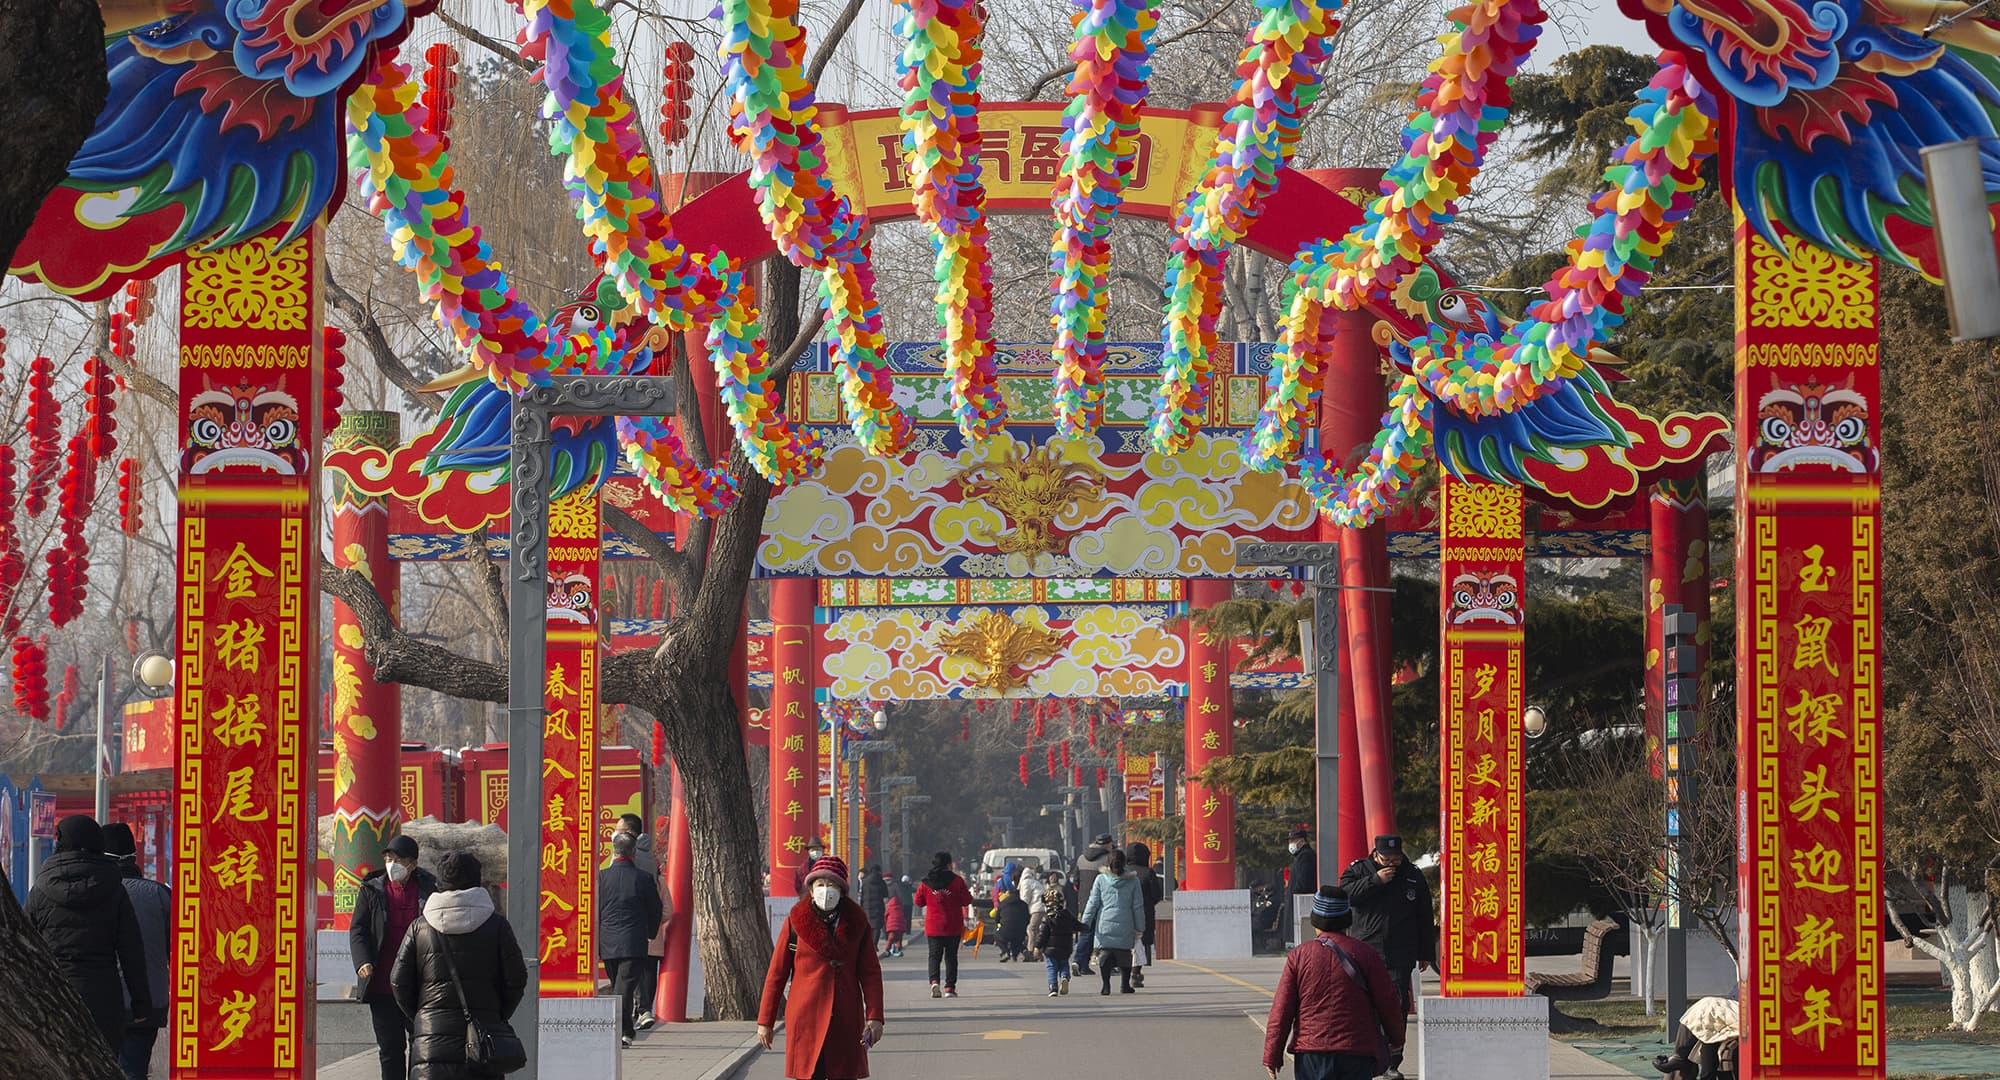 People wearing face masks walk under a canopy decorated with spinning colored fans for a canceled Lunar New Year temple fair at Longtan Park in Beijing, Saturday, Jan. 25, 2020. China's most festive holiday began in the shadow of a worrying new virus Saturday as the death toll surpassed 40, an unprecedented lockdown kept 36 million people from traveling and authorities canceled a host of Lunar New Year events. (AP Photo/Mark Schiefelbein) — Copyright 2020 The Associated Press. All rights reserved